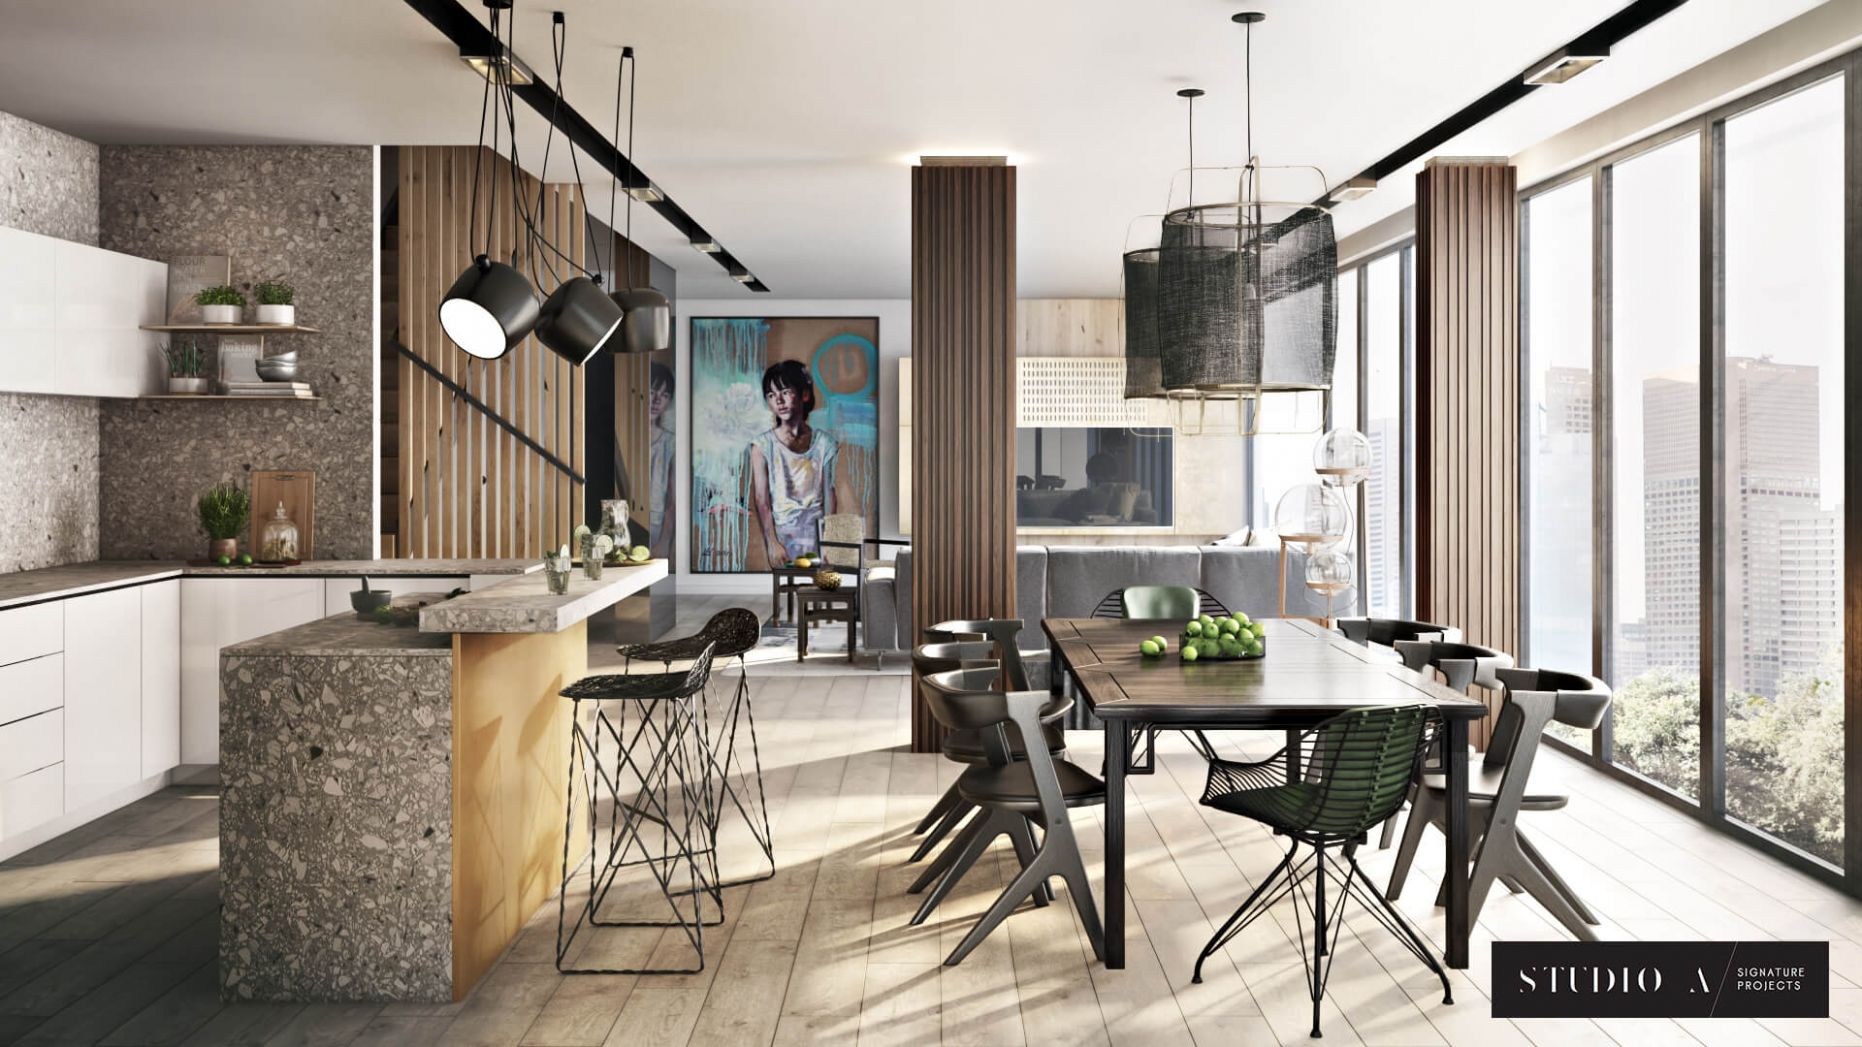 Apartment 12D Renders for NYC Interior Design Project - Ronen ...